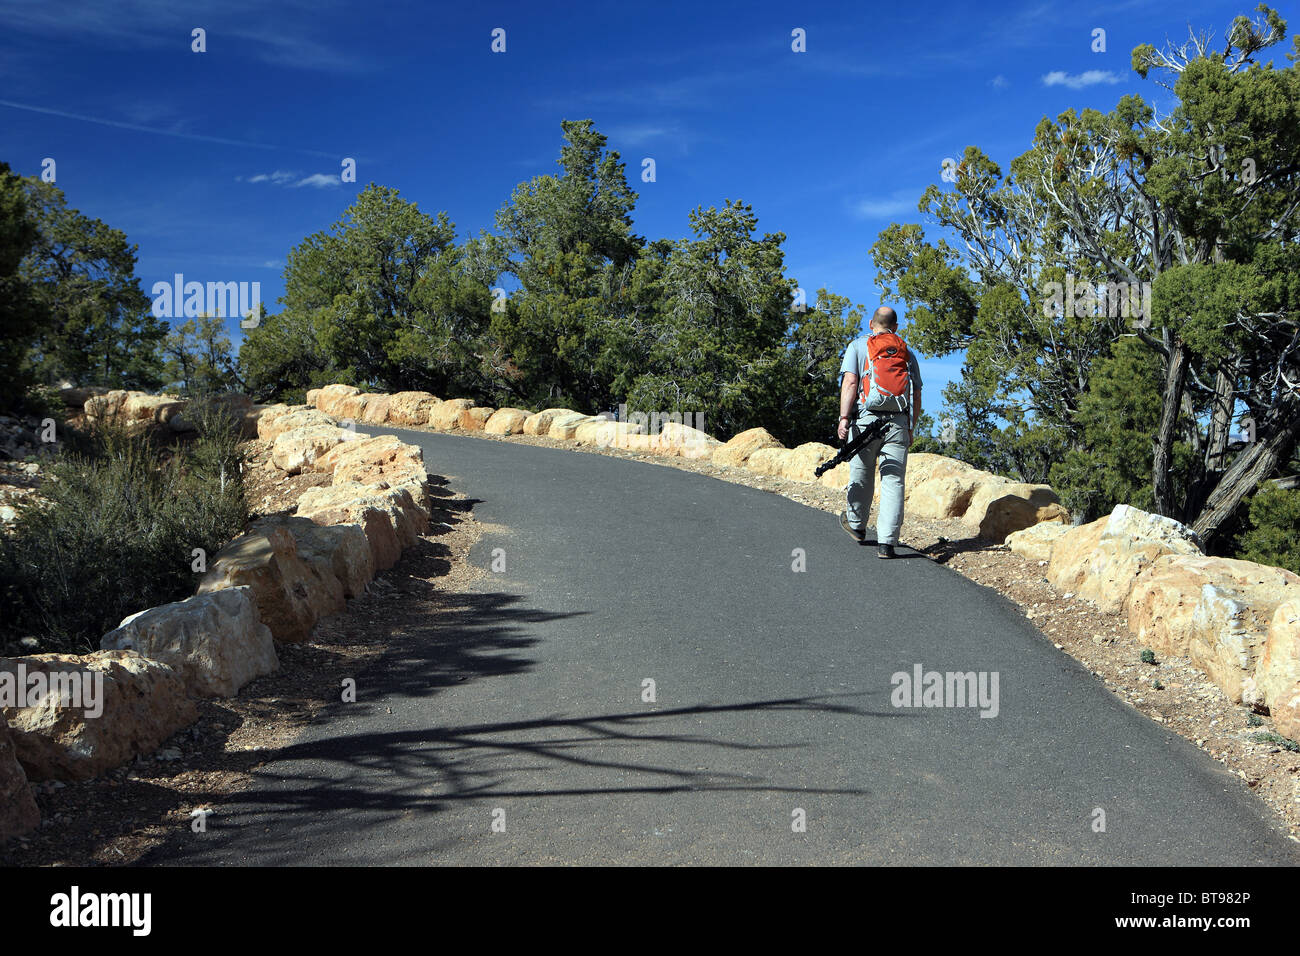 Man walking on the path round the South rim of the Grand Canyon National Park - Stock Image